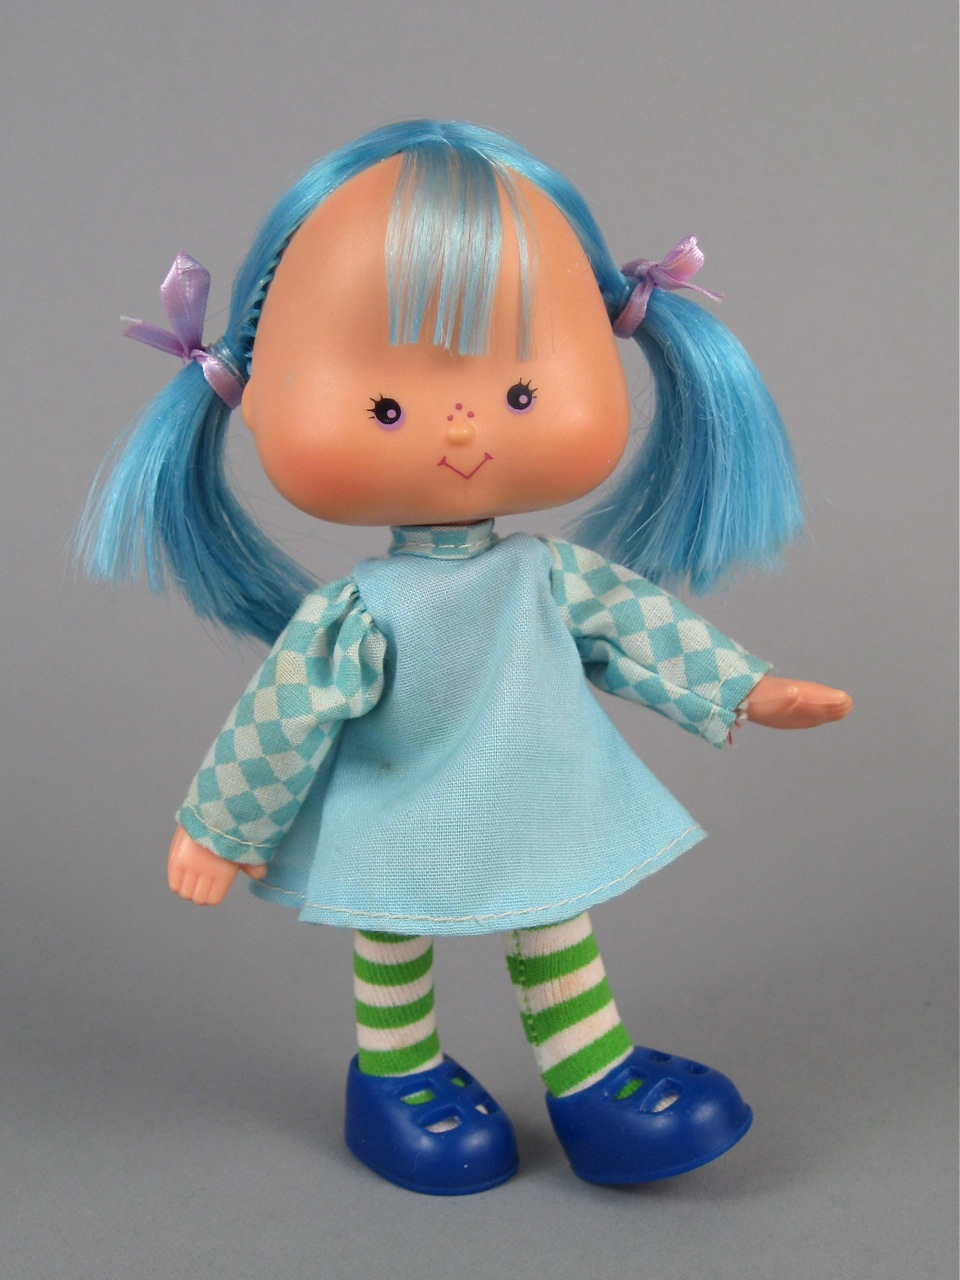 Kenner Blueberry Muffin doll